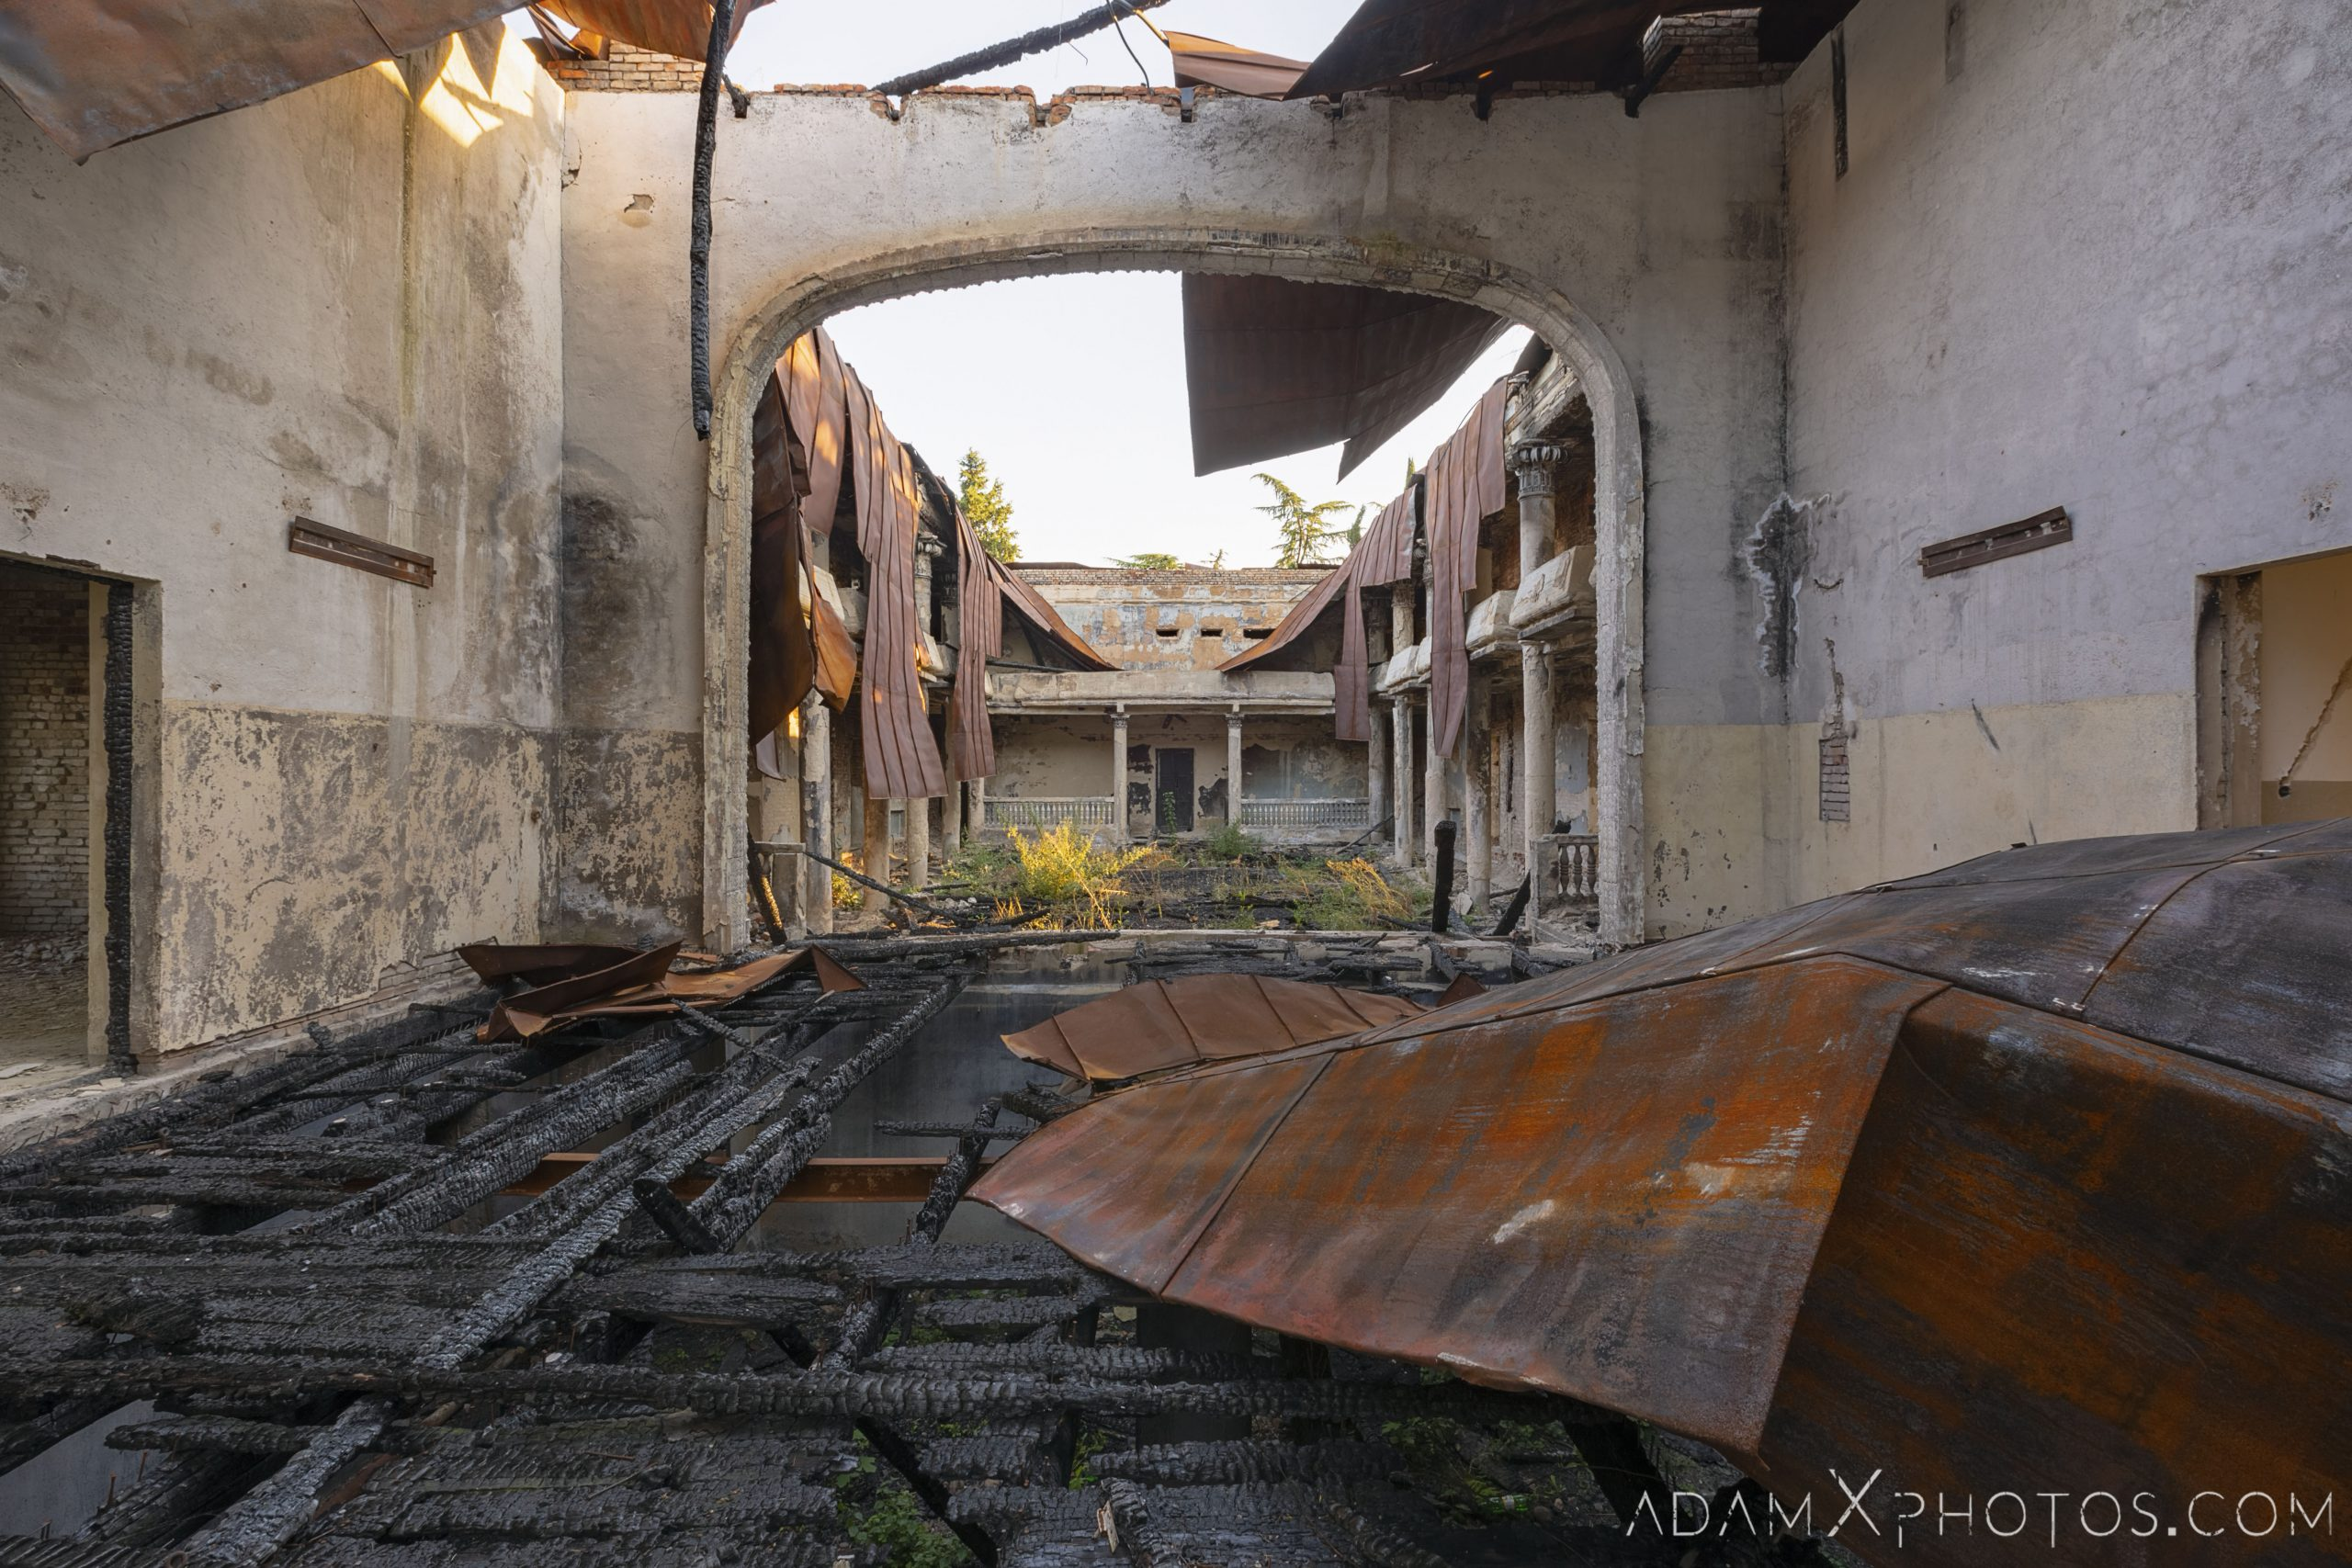 Inside Burned burnt collapsed roof metal House of Culture Palace rural Soviet era Georgia Adam X AdamXPhotos Urbex Urban Exploration 2018 Abandoned Access History decay ruins lost forgotten derelict location creepy haunting eerie security